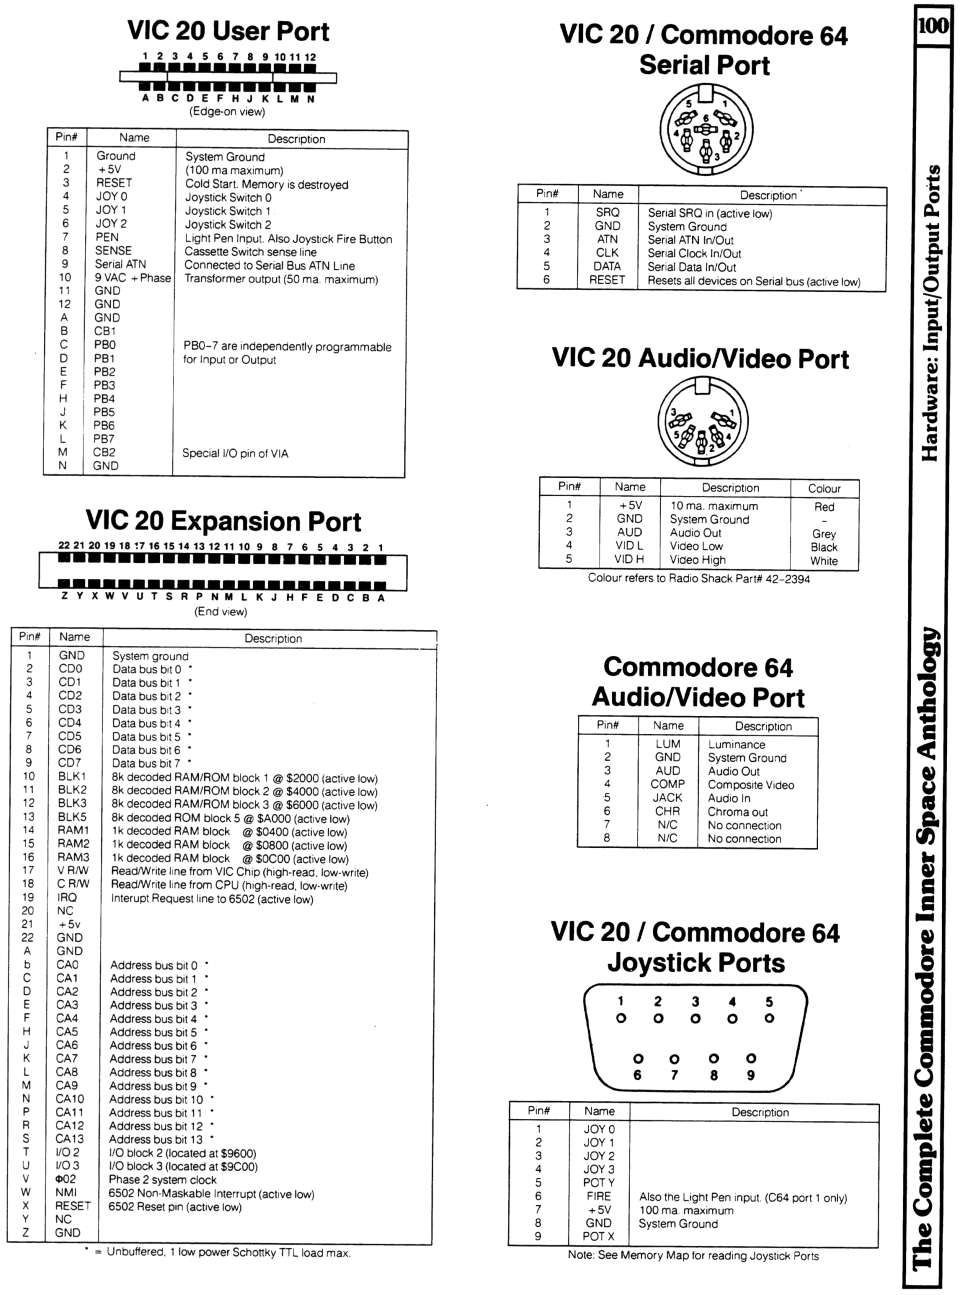 [960�1295 Hardware Section: VIC 20 I/O Ports, Commodore 64 I/O Ports]